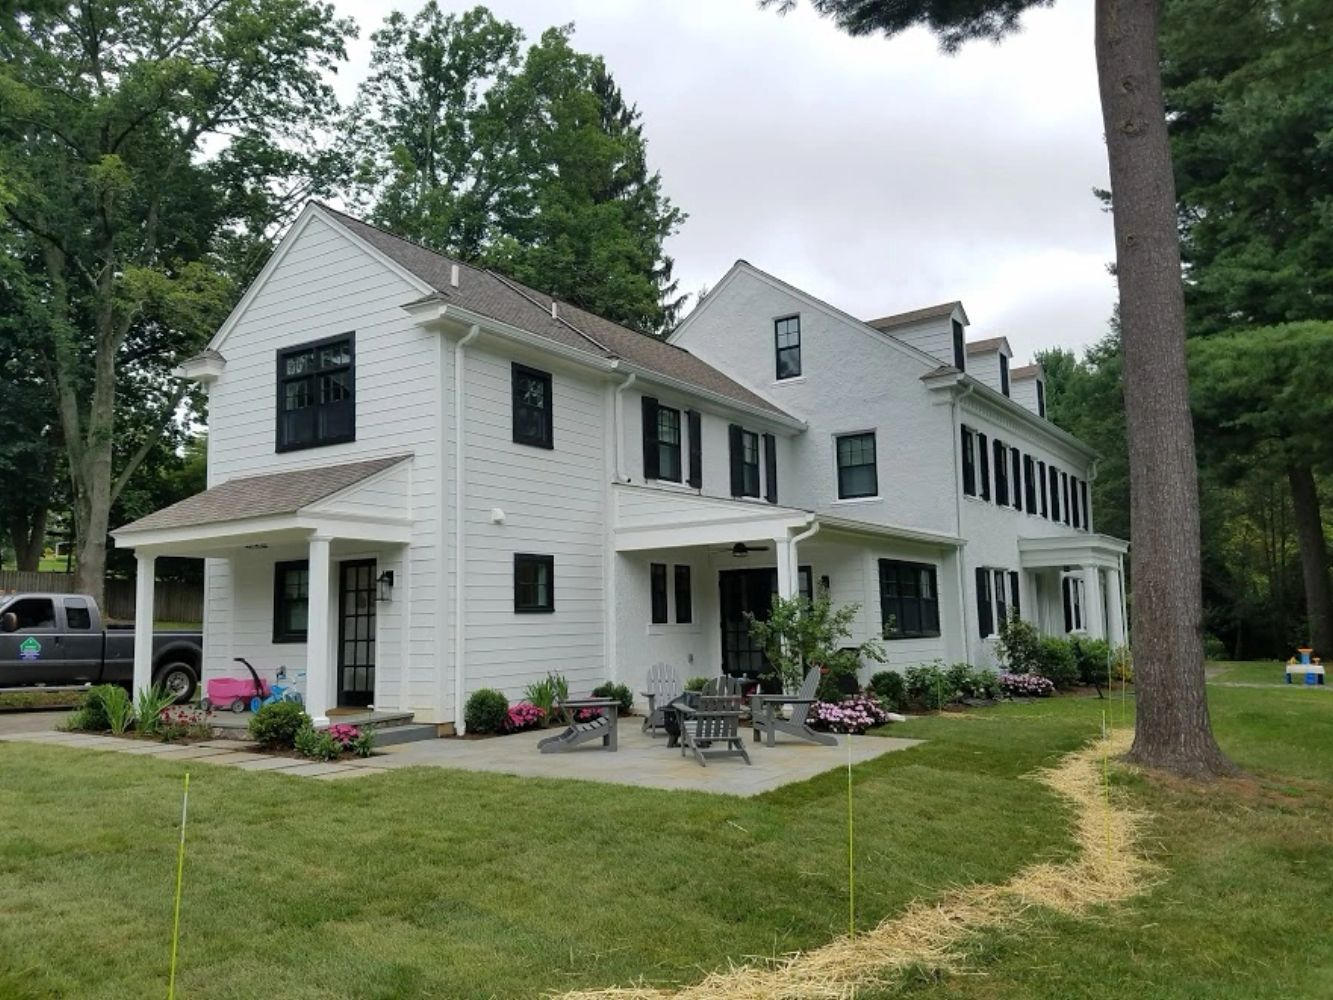 Radnor Builder Renovation James Hardie Stucco Renovate General Contractor Main Line Easttown